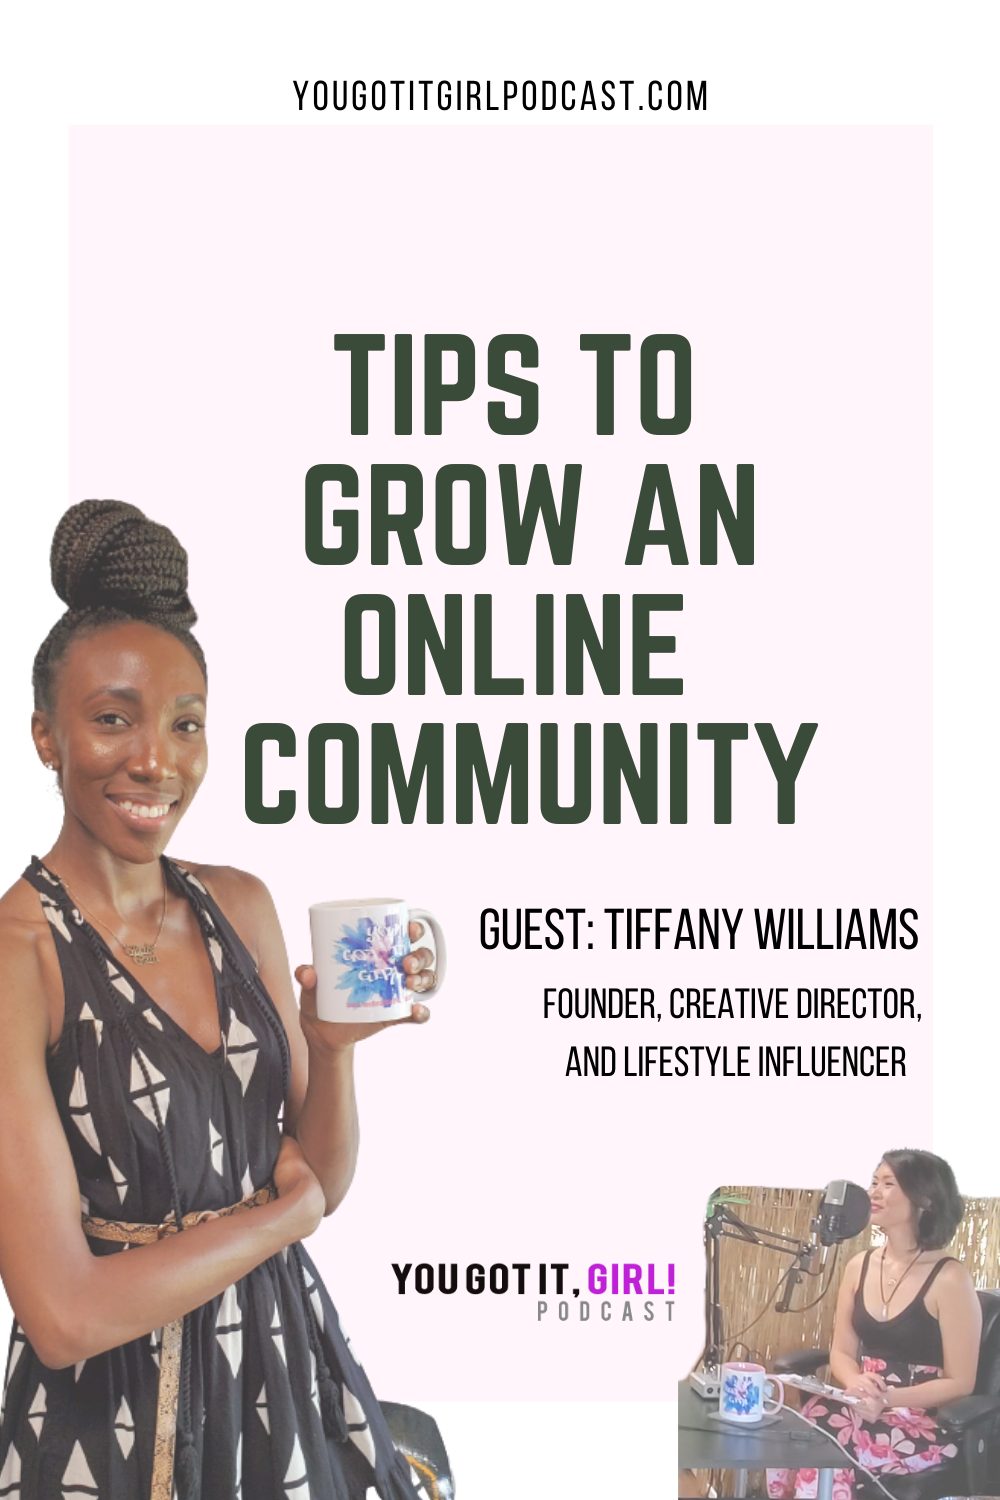 You Got It Girl Podcast Comunity Building Guest Tiffany Williams